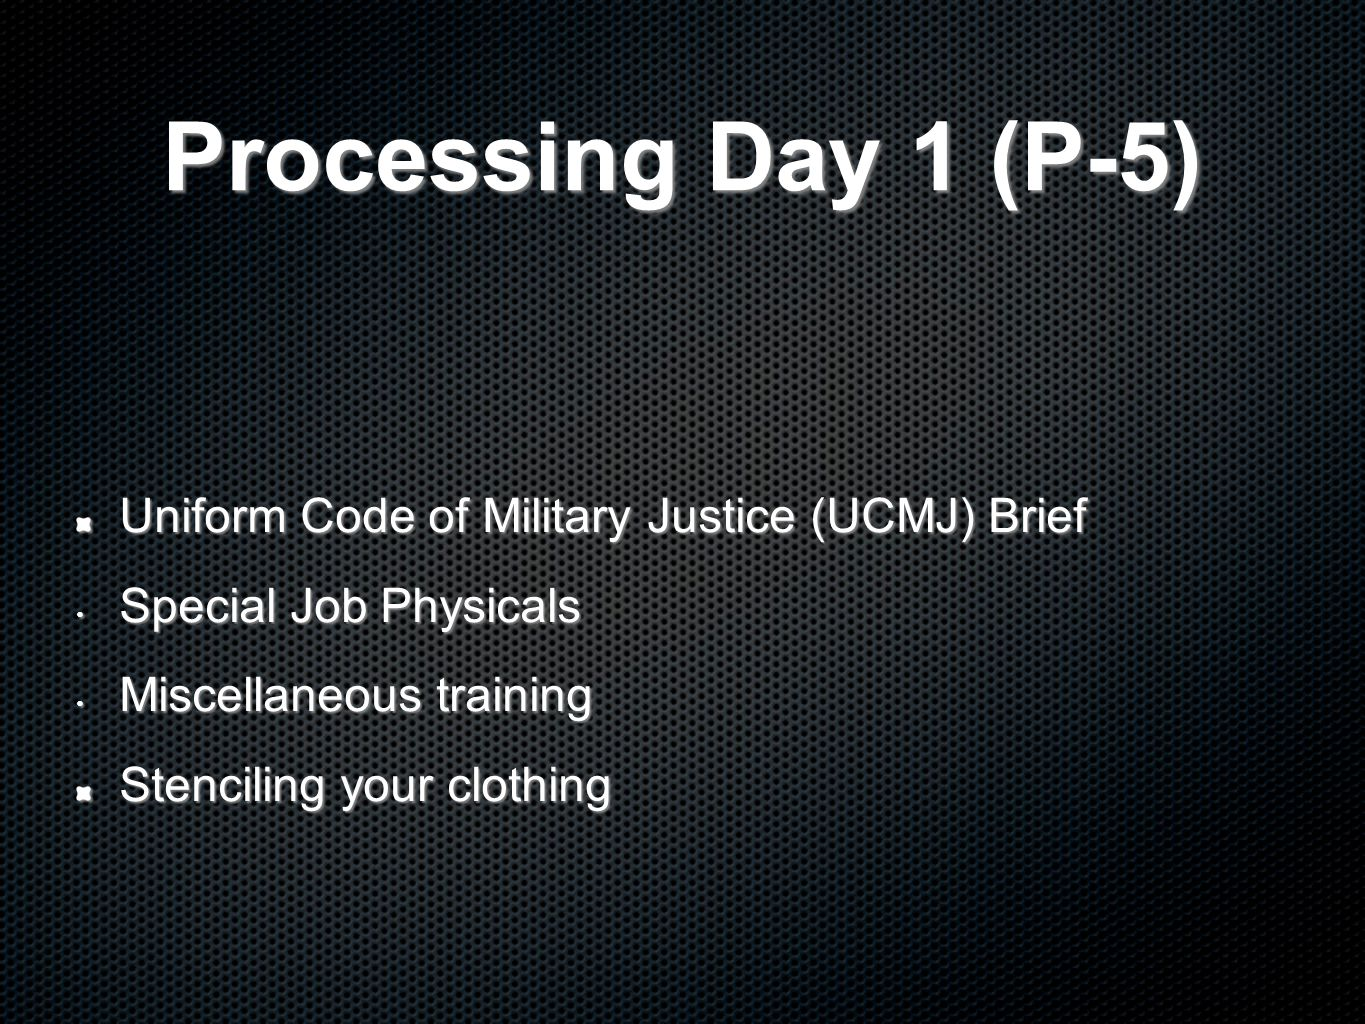 Processing Day 1 (P-5) Uniform Code of Military Justice (UCMJ) Brief Special Job Physicals Special Job Physicals Miscellaneous training Miscellaneous training Stenciling your clothing